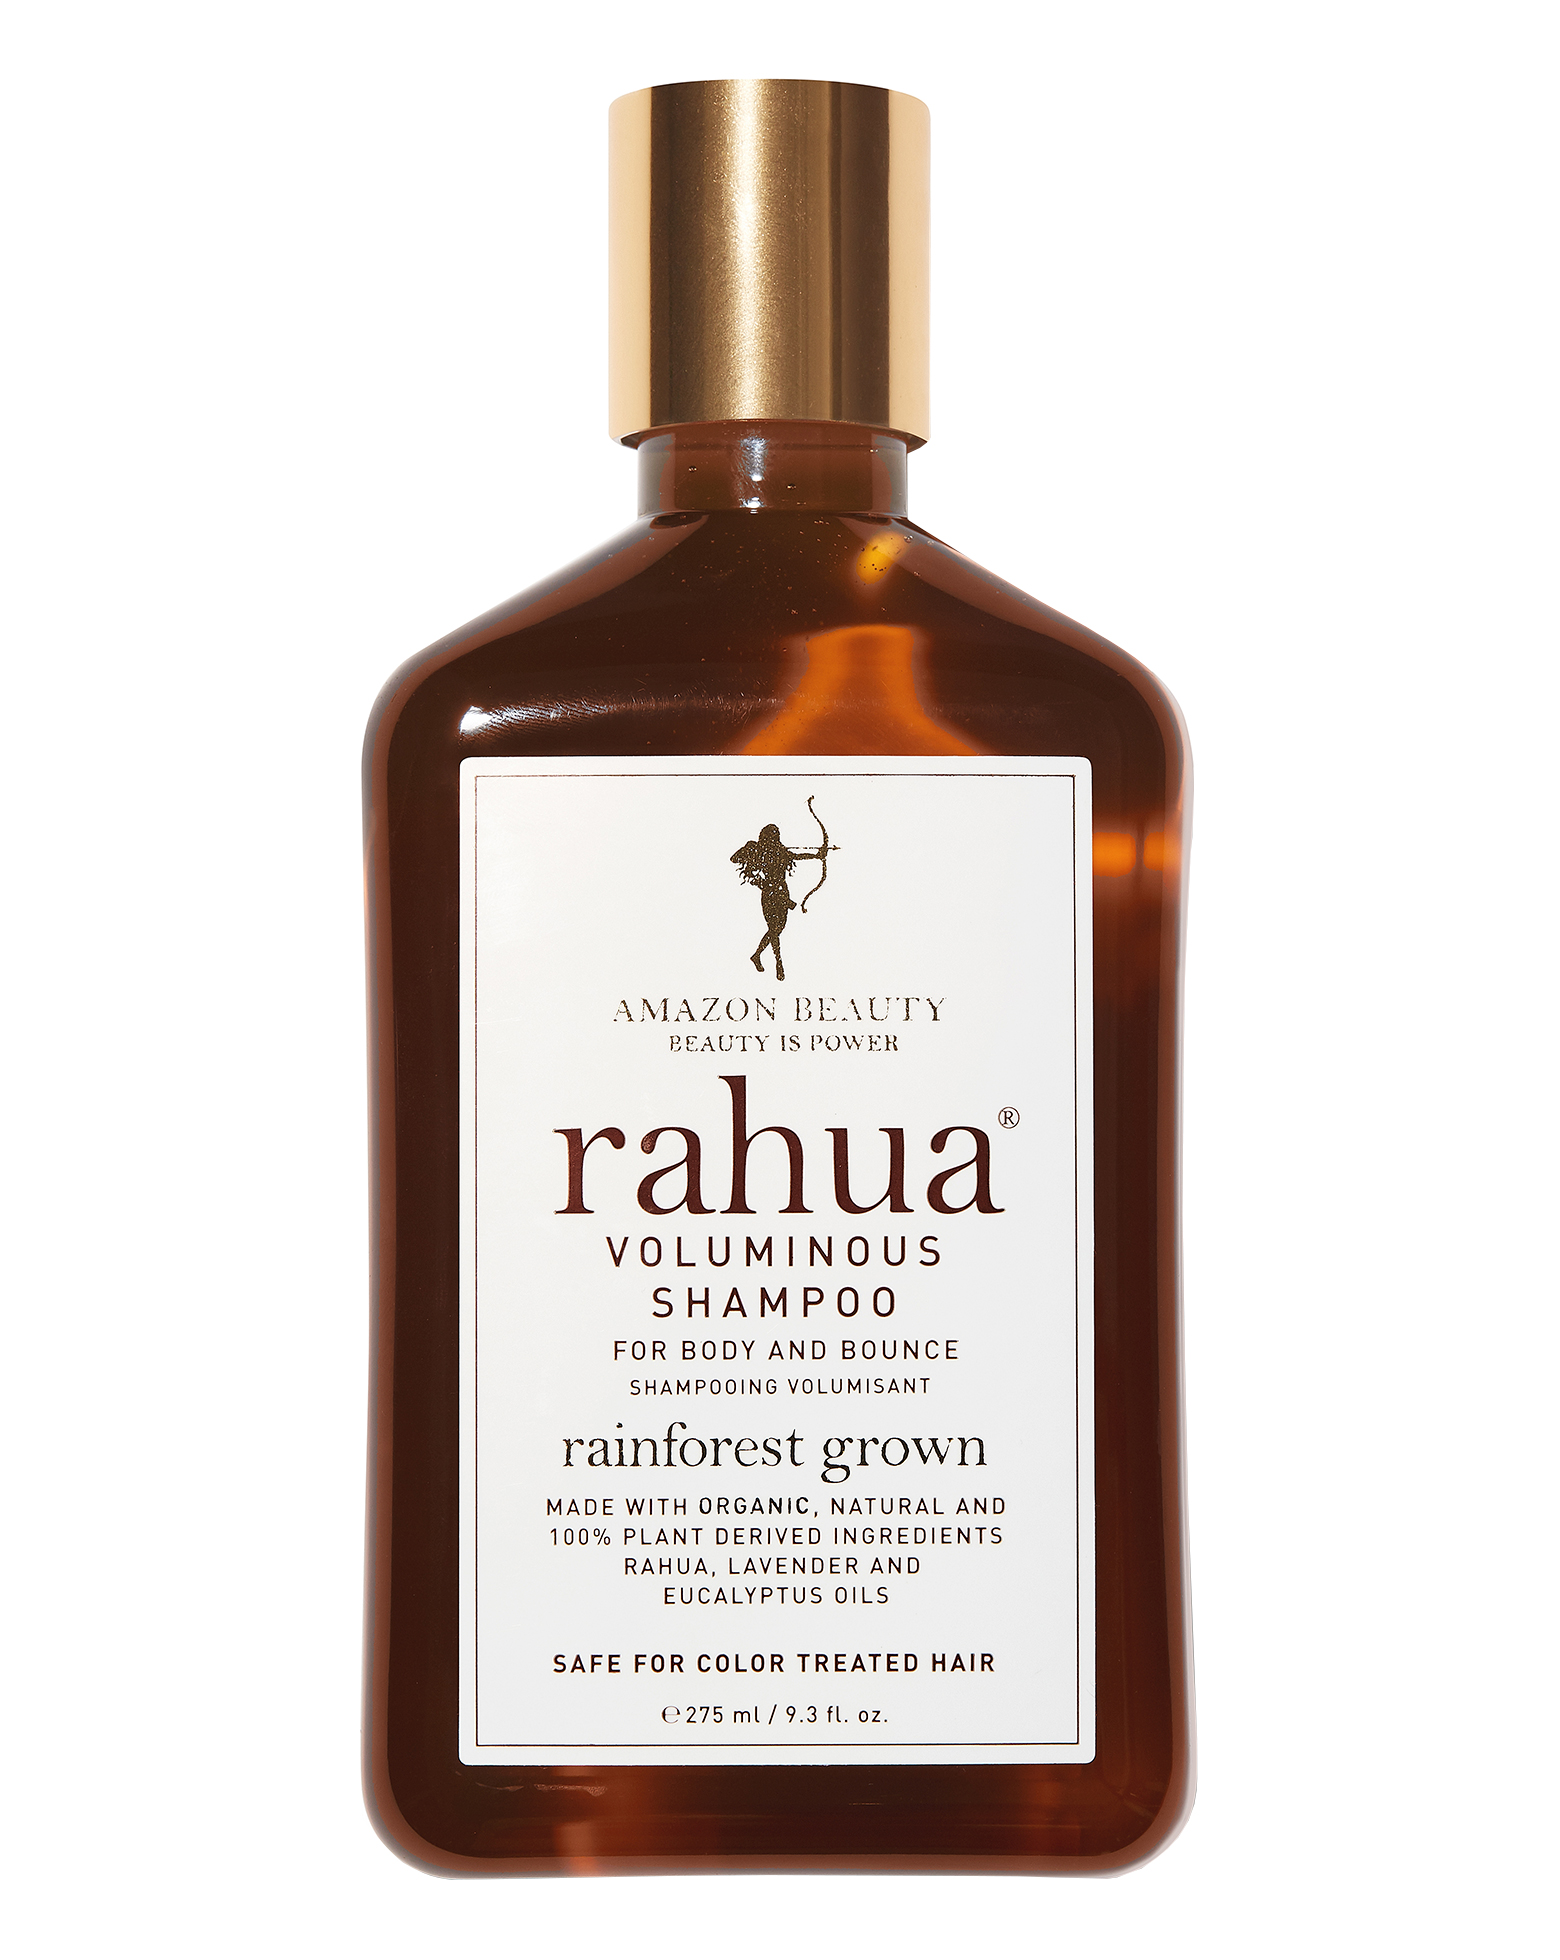 Voluminous Shampoo by rahua